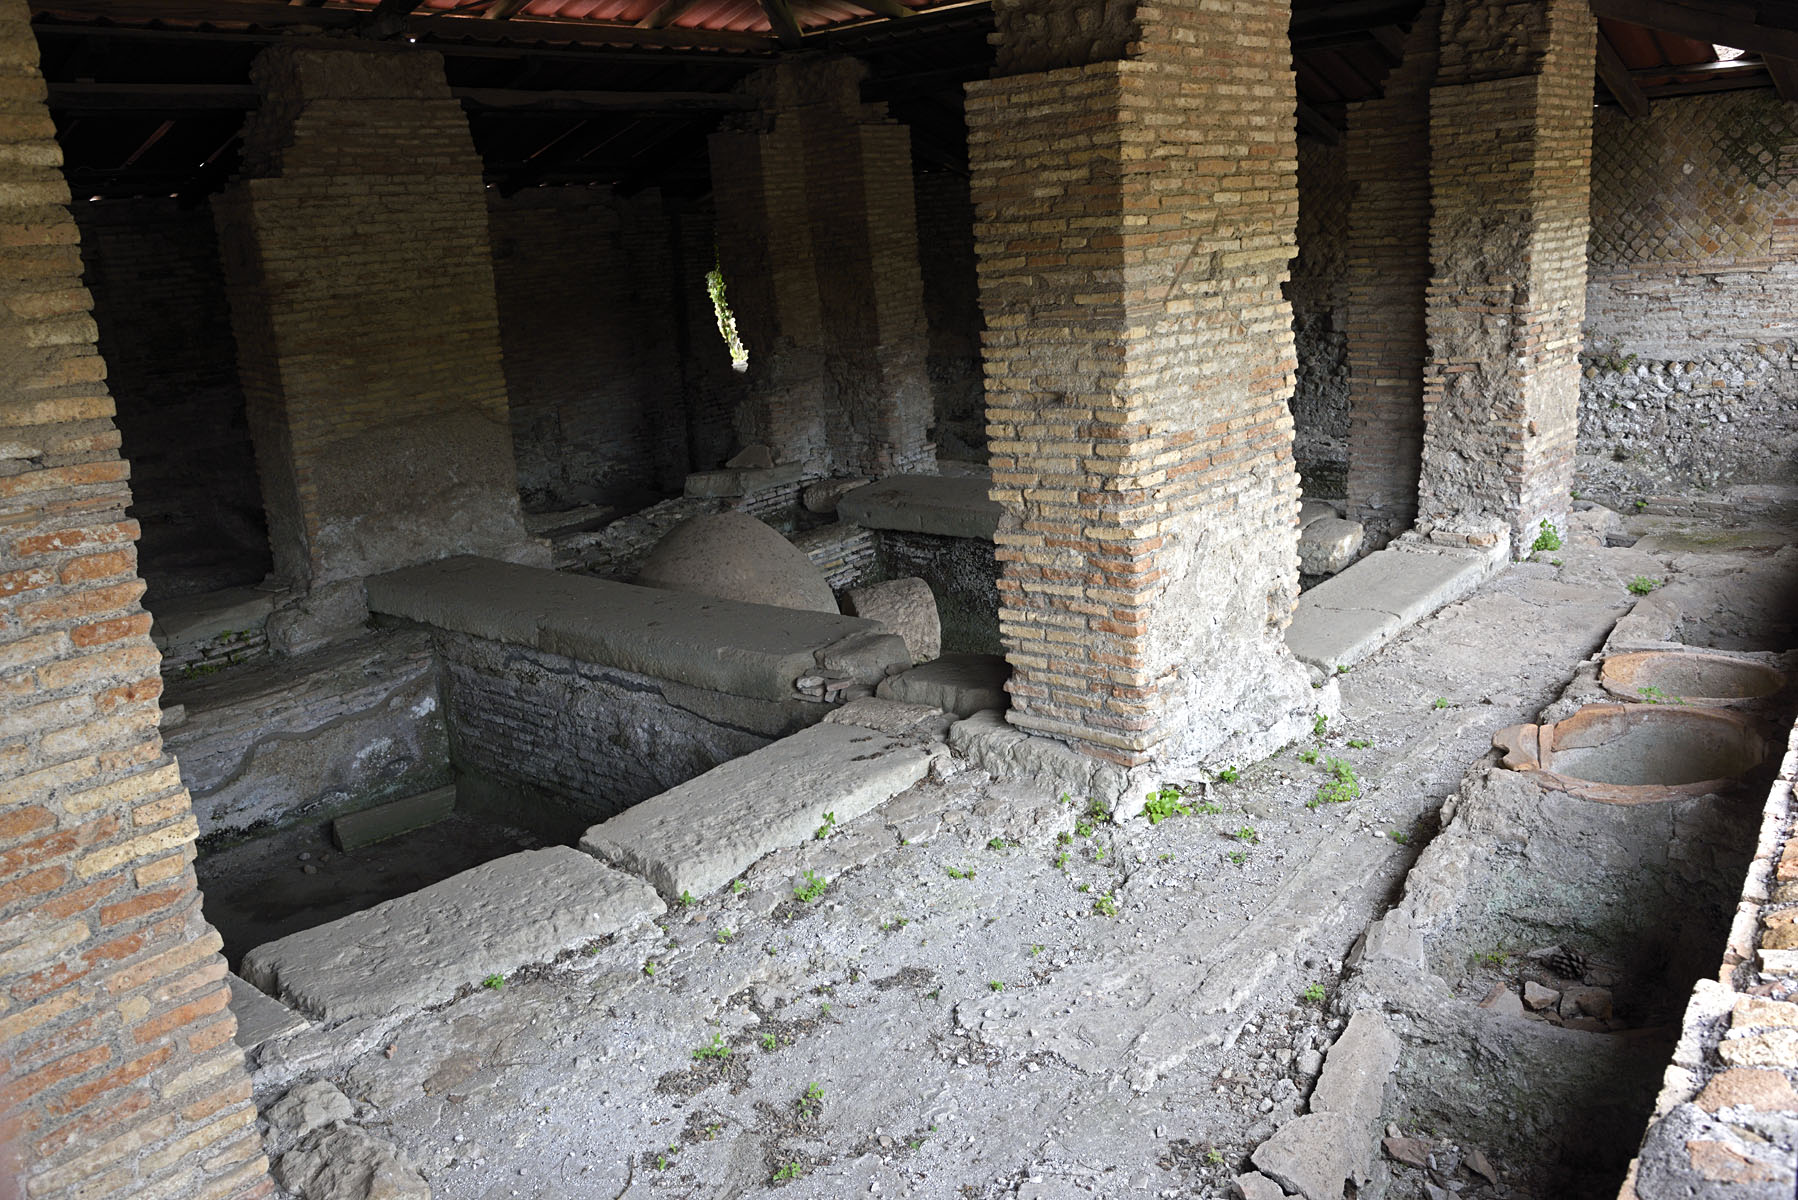 Ostia antica an overlooked archaeological site